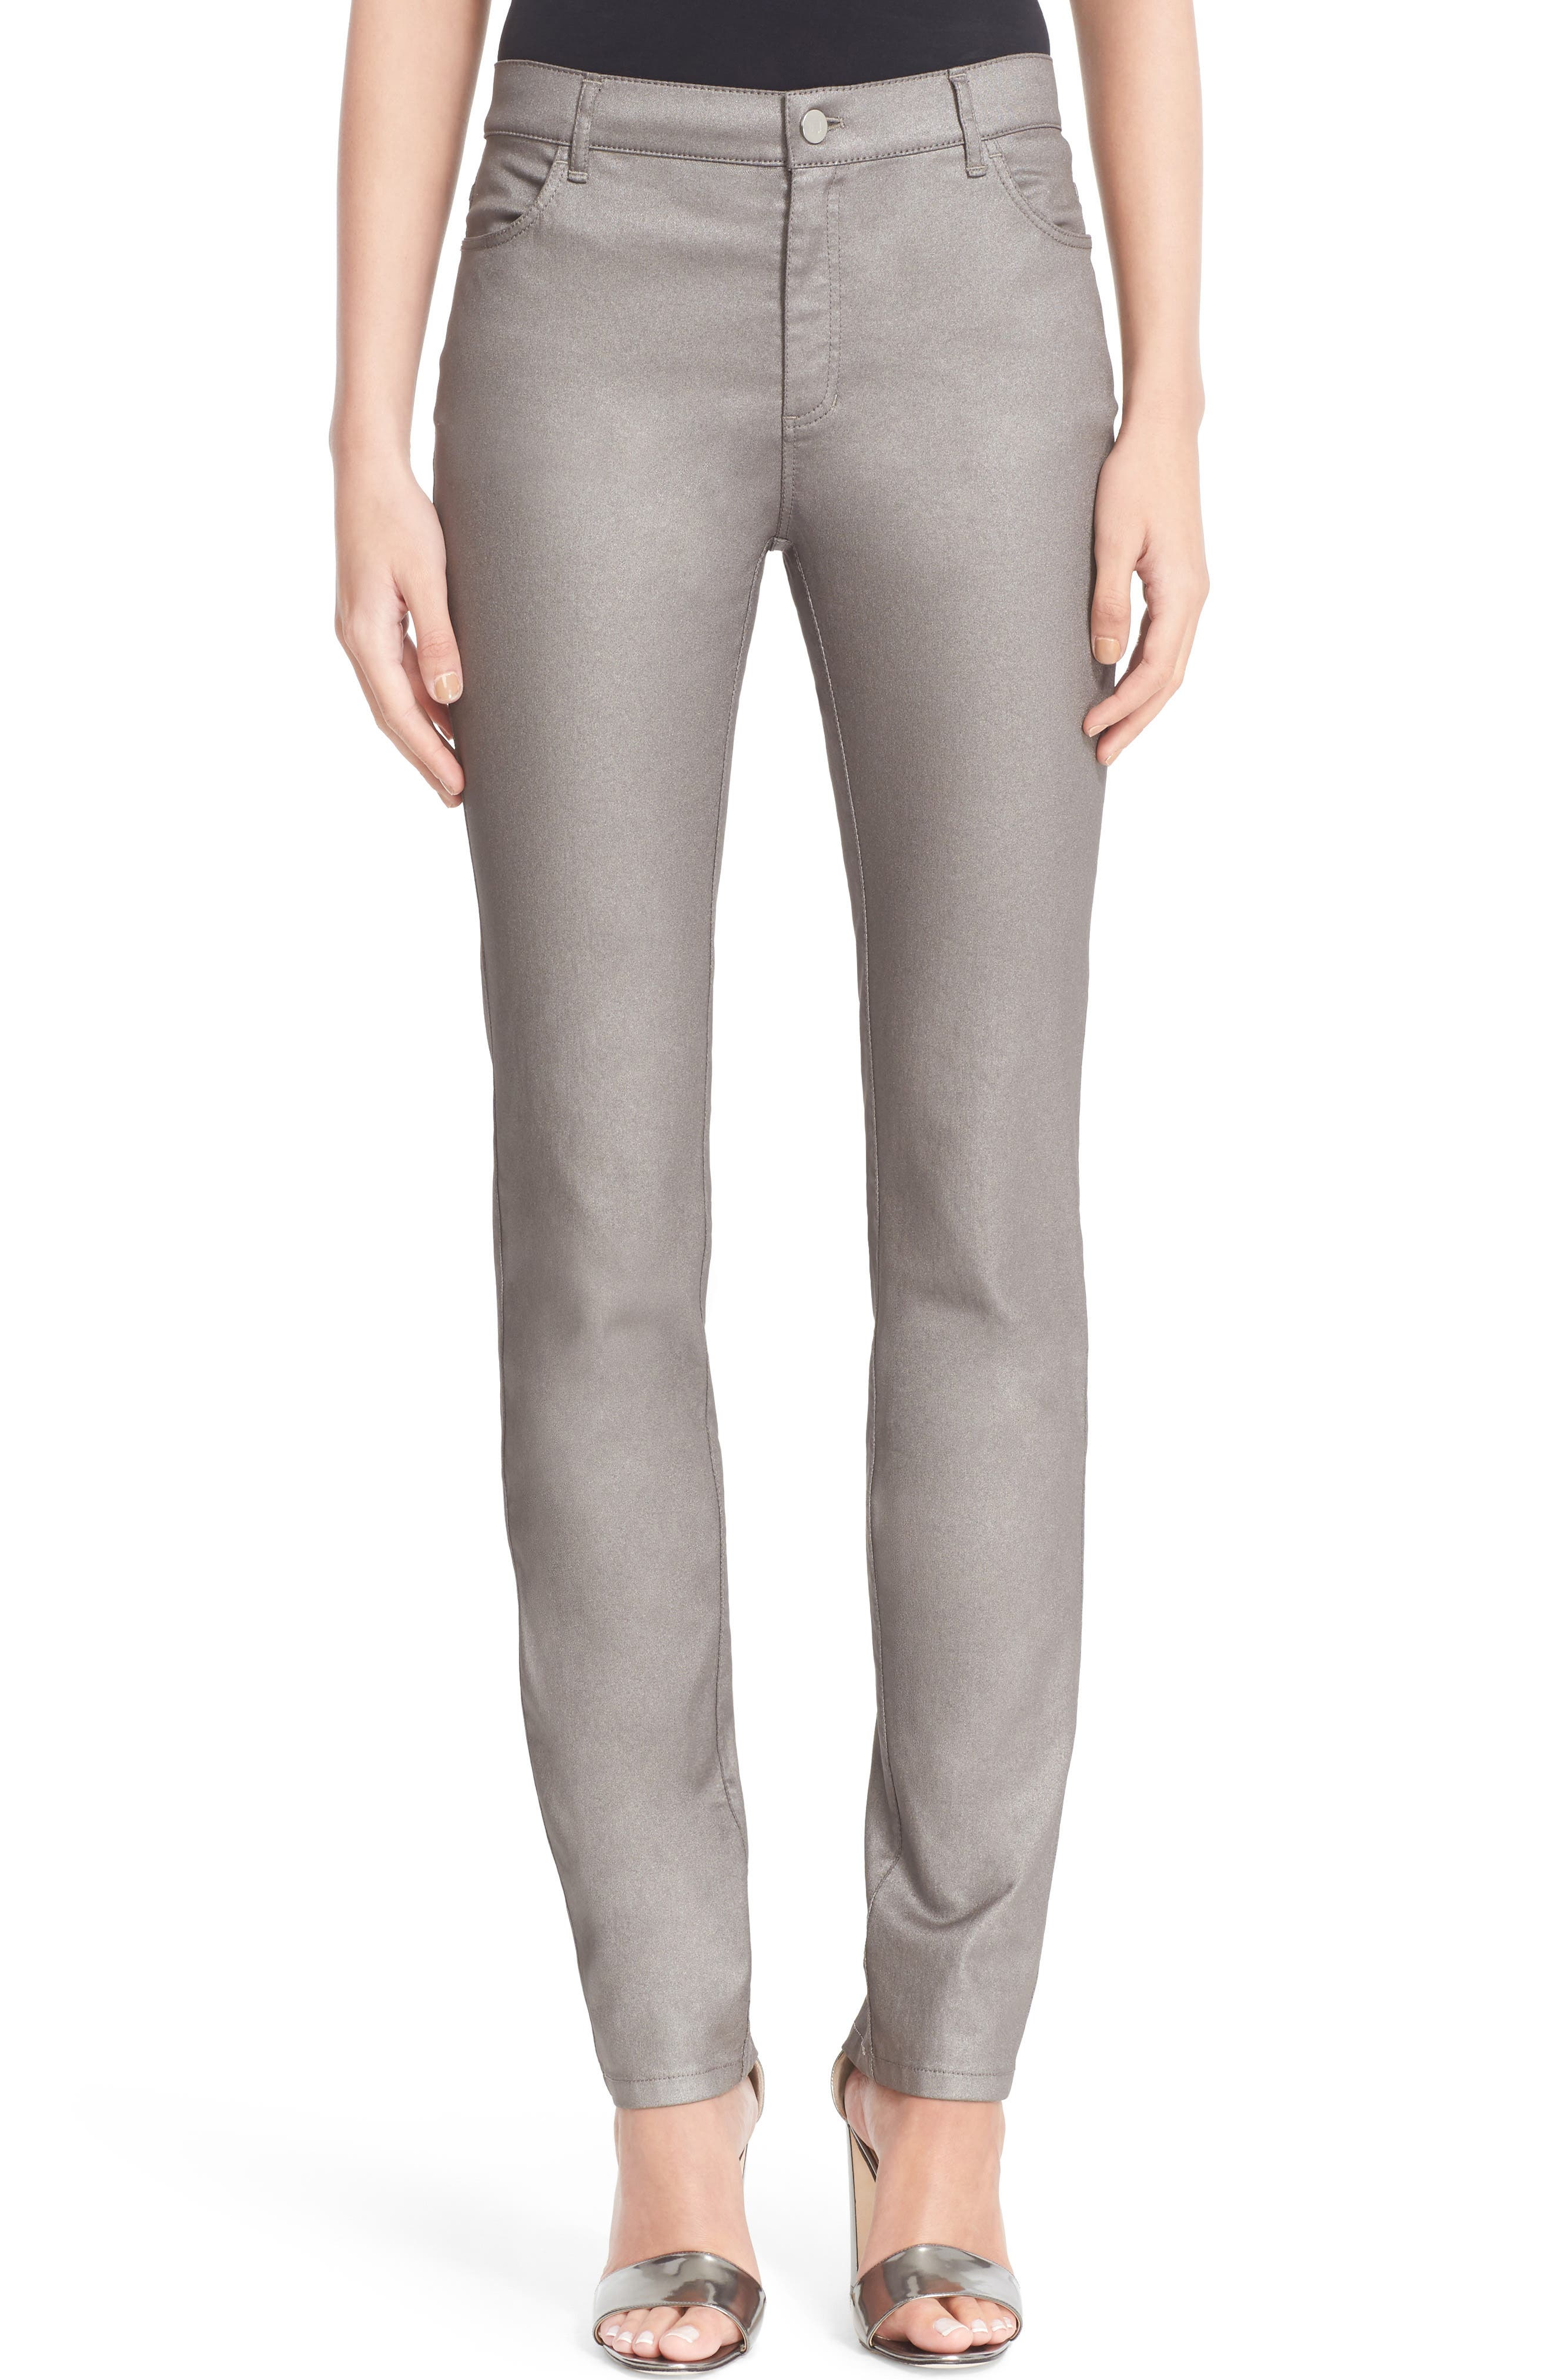 LAFAYETTE 148 NEW YORK, Curvy Fit Skinny Jeans, Main thumbnail 1, color, SILVER